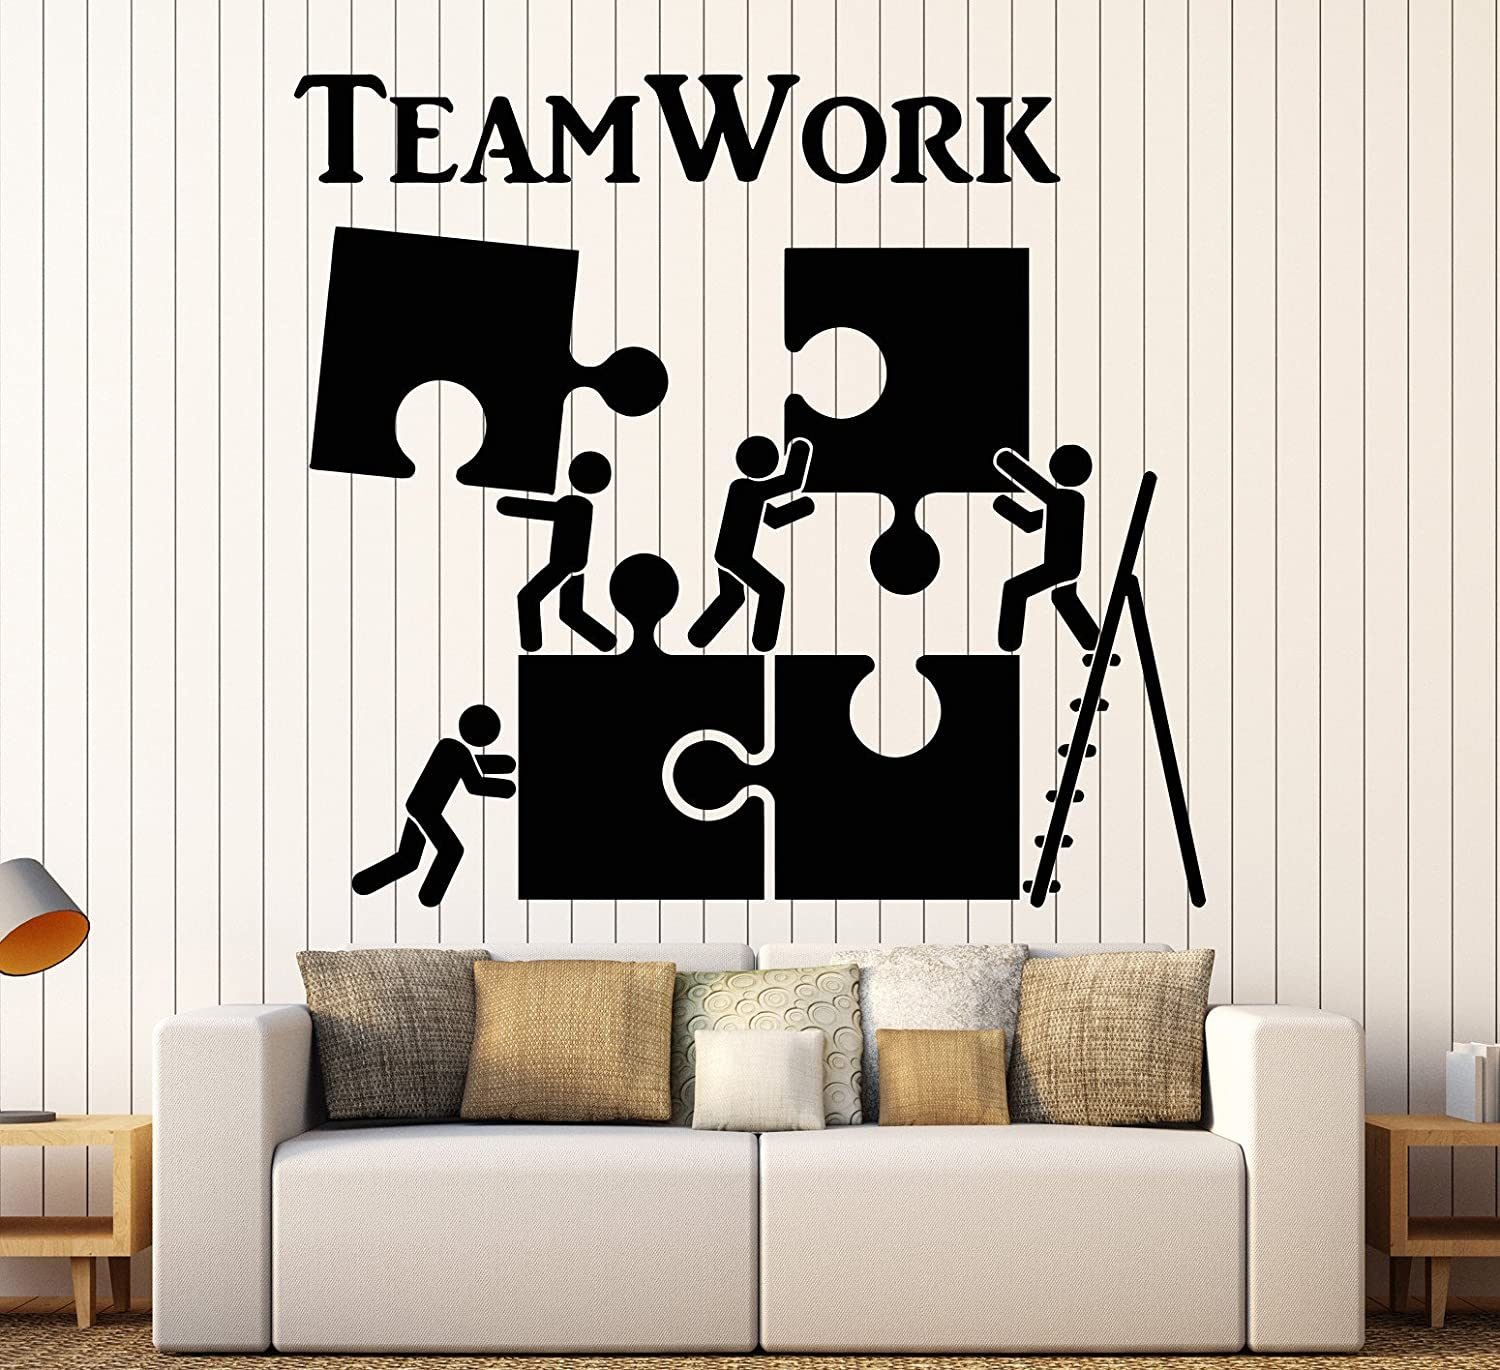 Vinyl Wall Decal Teamwork Motivation Decor for Office Worker Puzzle Stickers Large Decor (1226ig) Matte Black